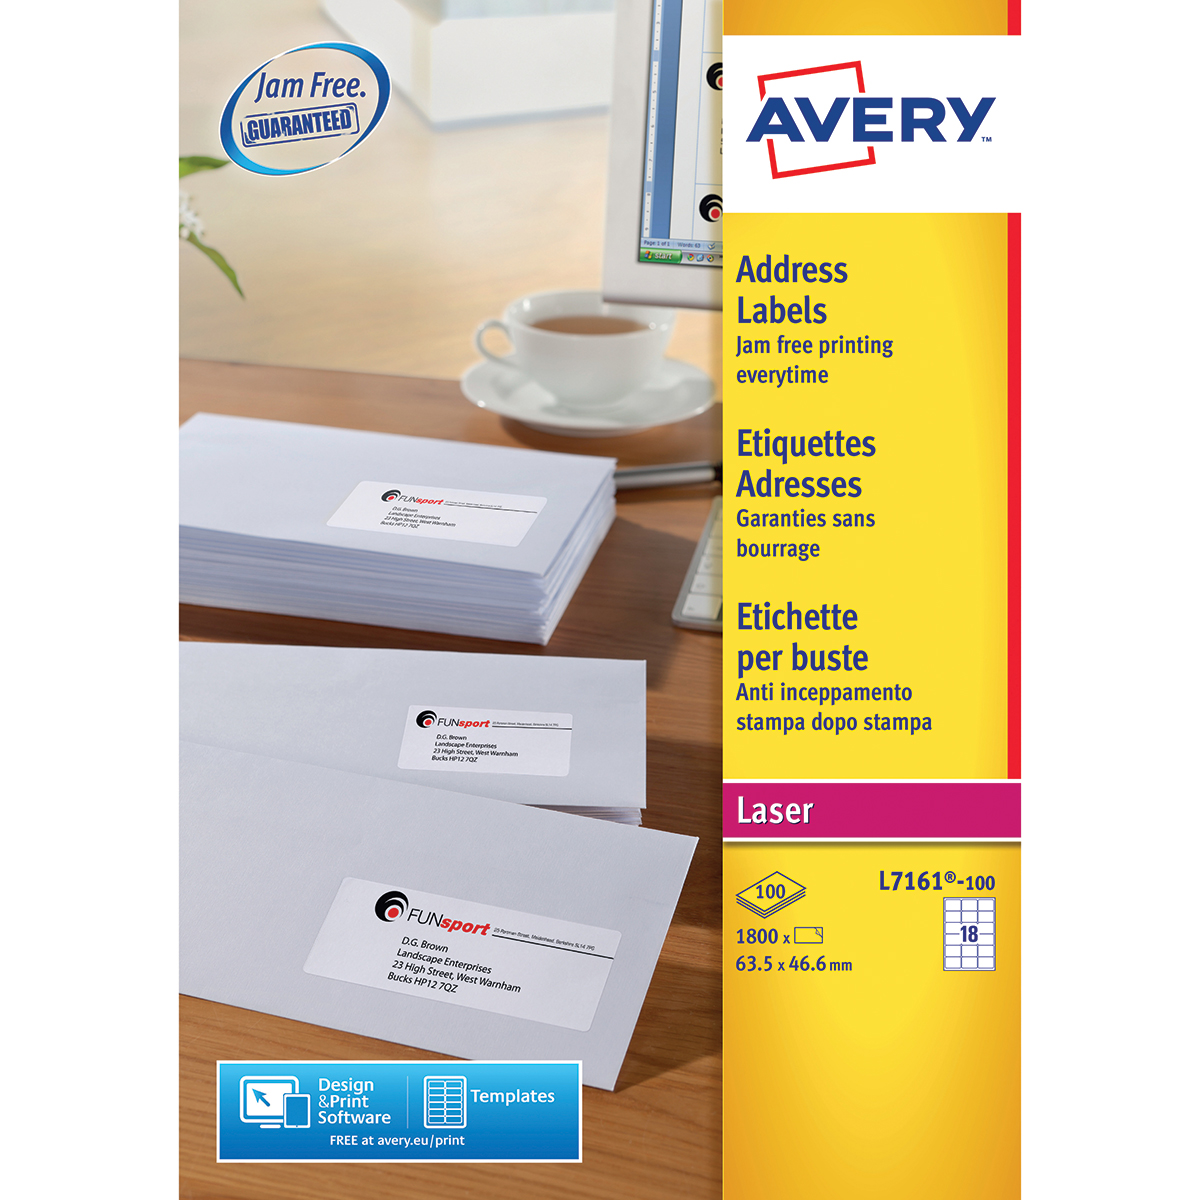 Avery L7161-100 Address Labels 100 sheets - 18 Labels per Sheet